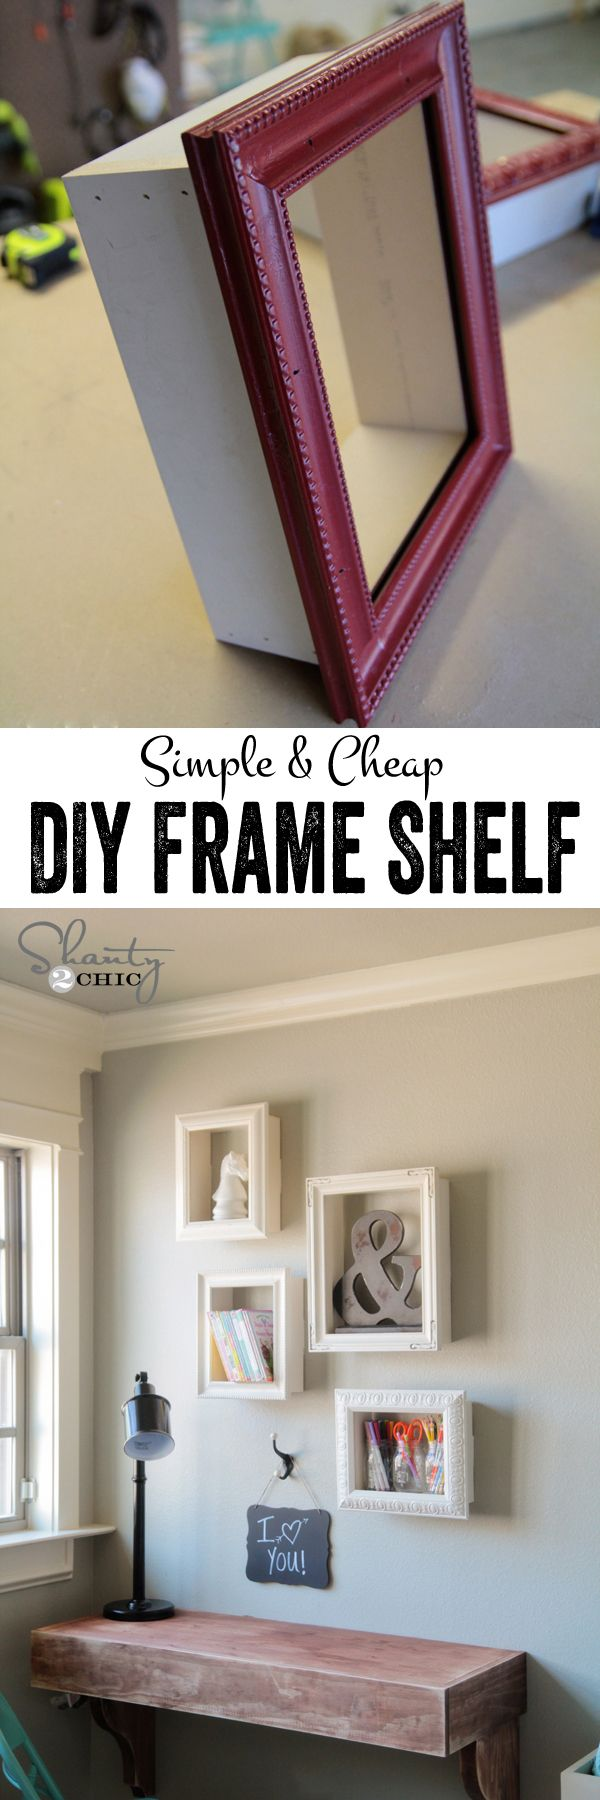 2 Incorporate Trends into Thrift Store Frames